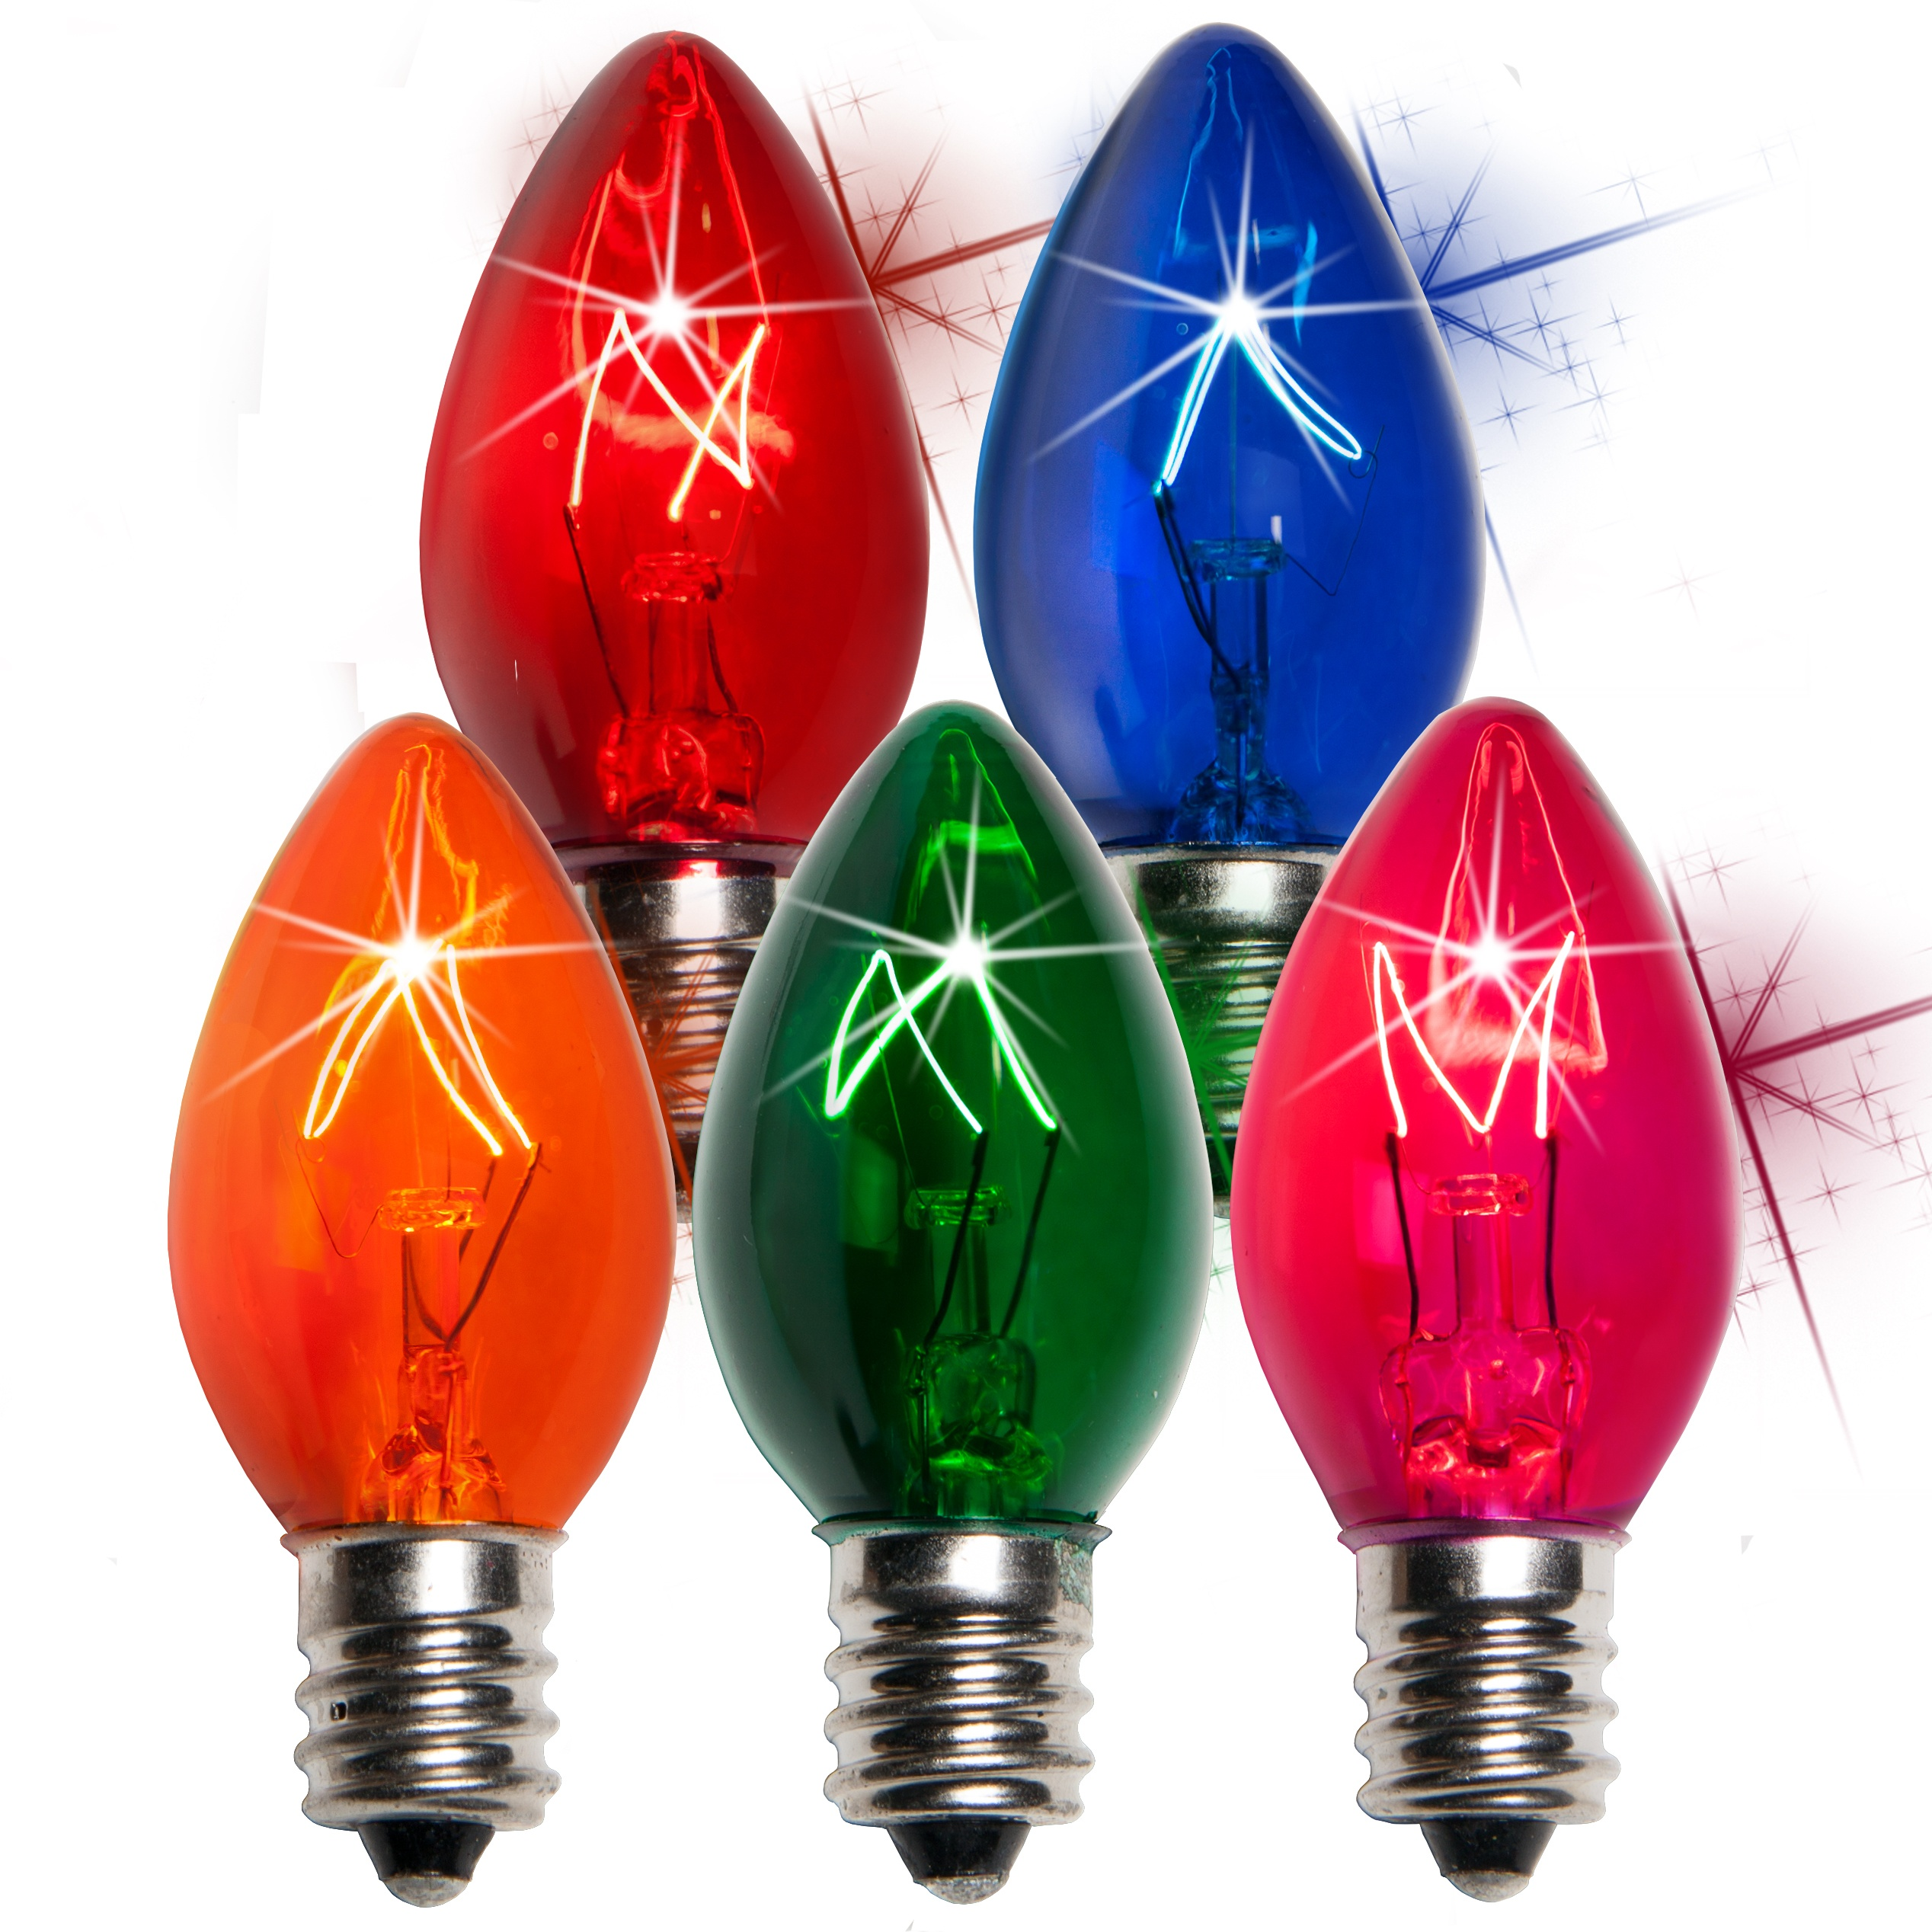 c7 christmas light bulb c7 twinkle multicolor christmas light bulbs. Black Bedroom Furniture Sets. Home Design Ideas